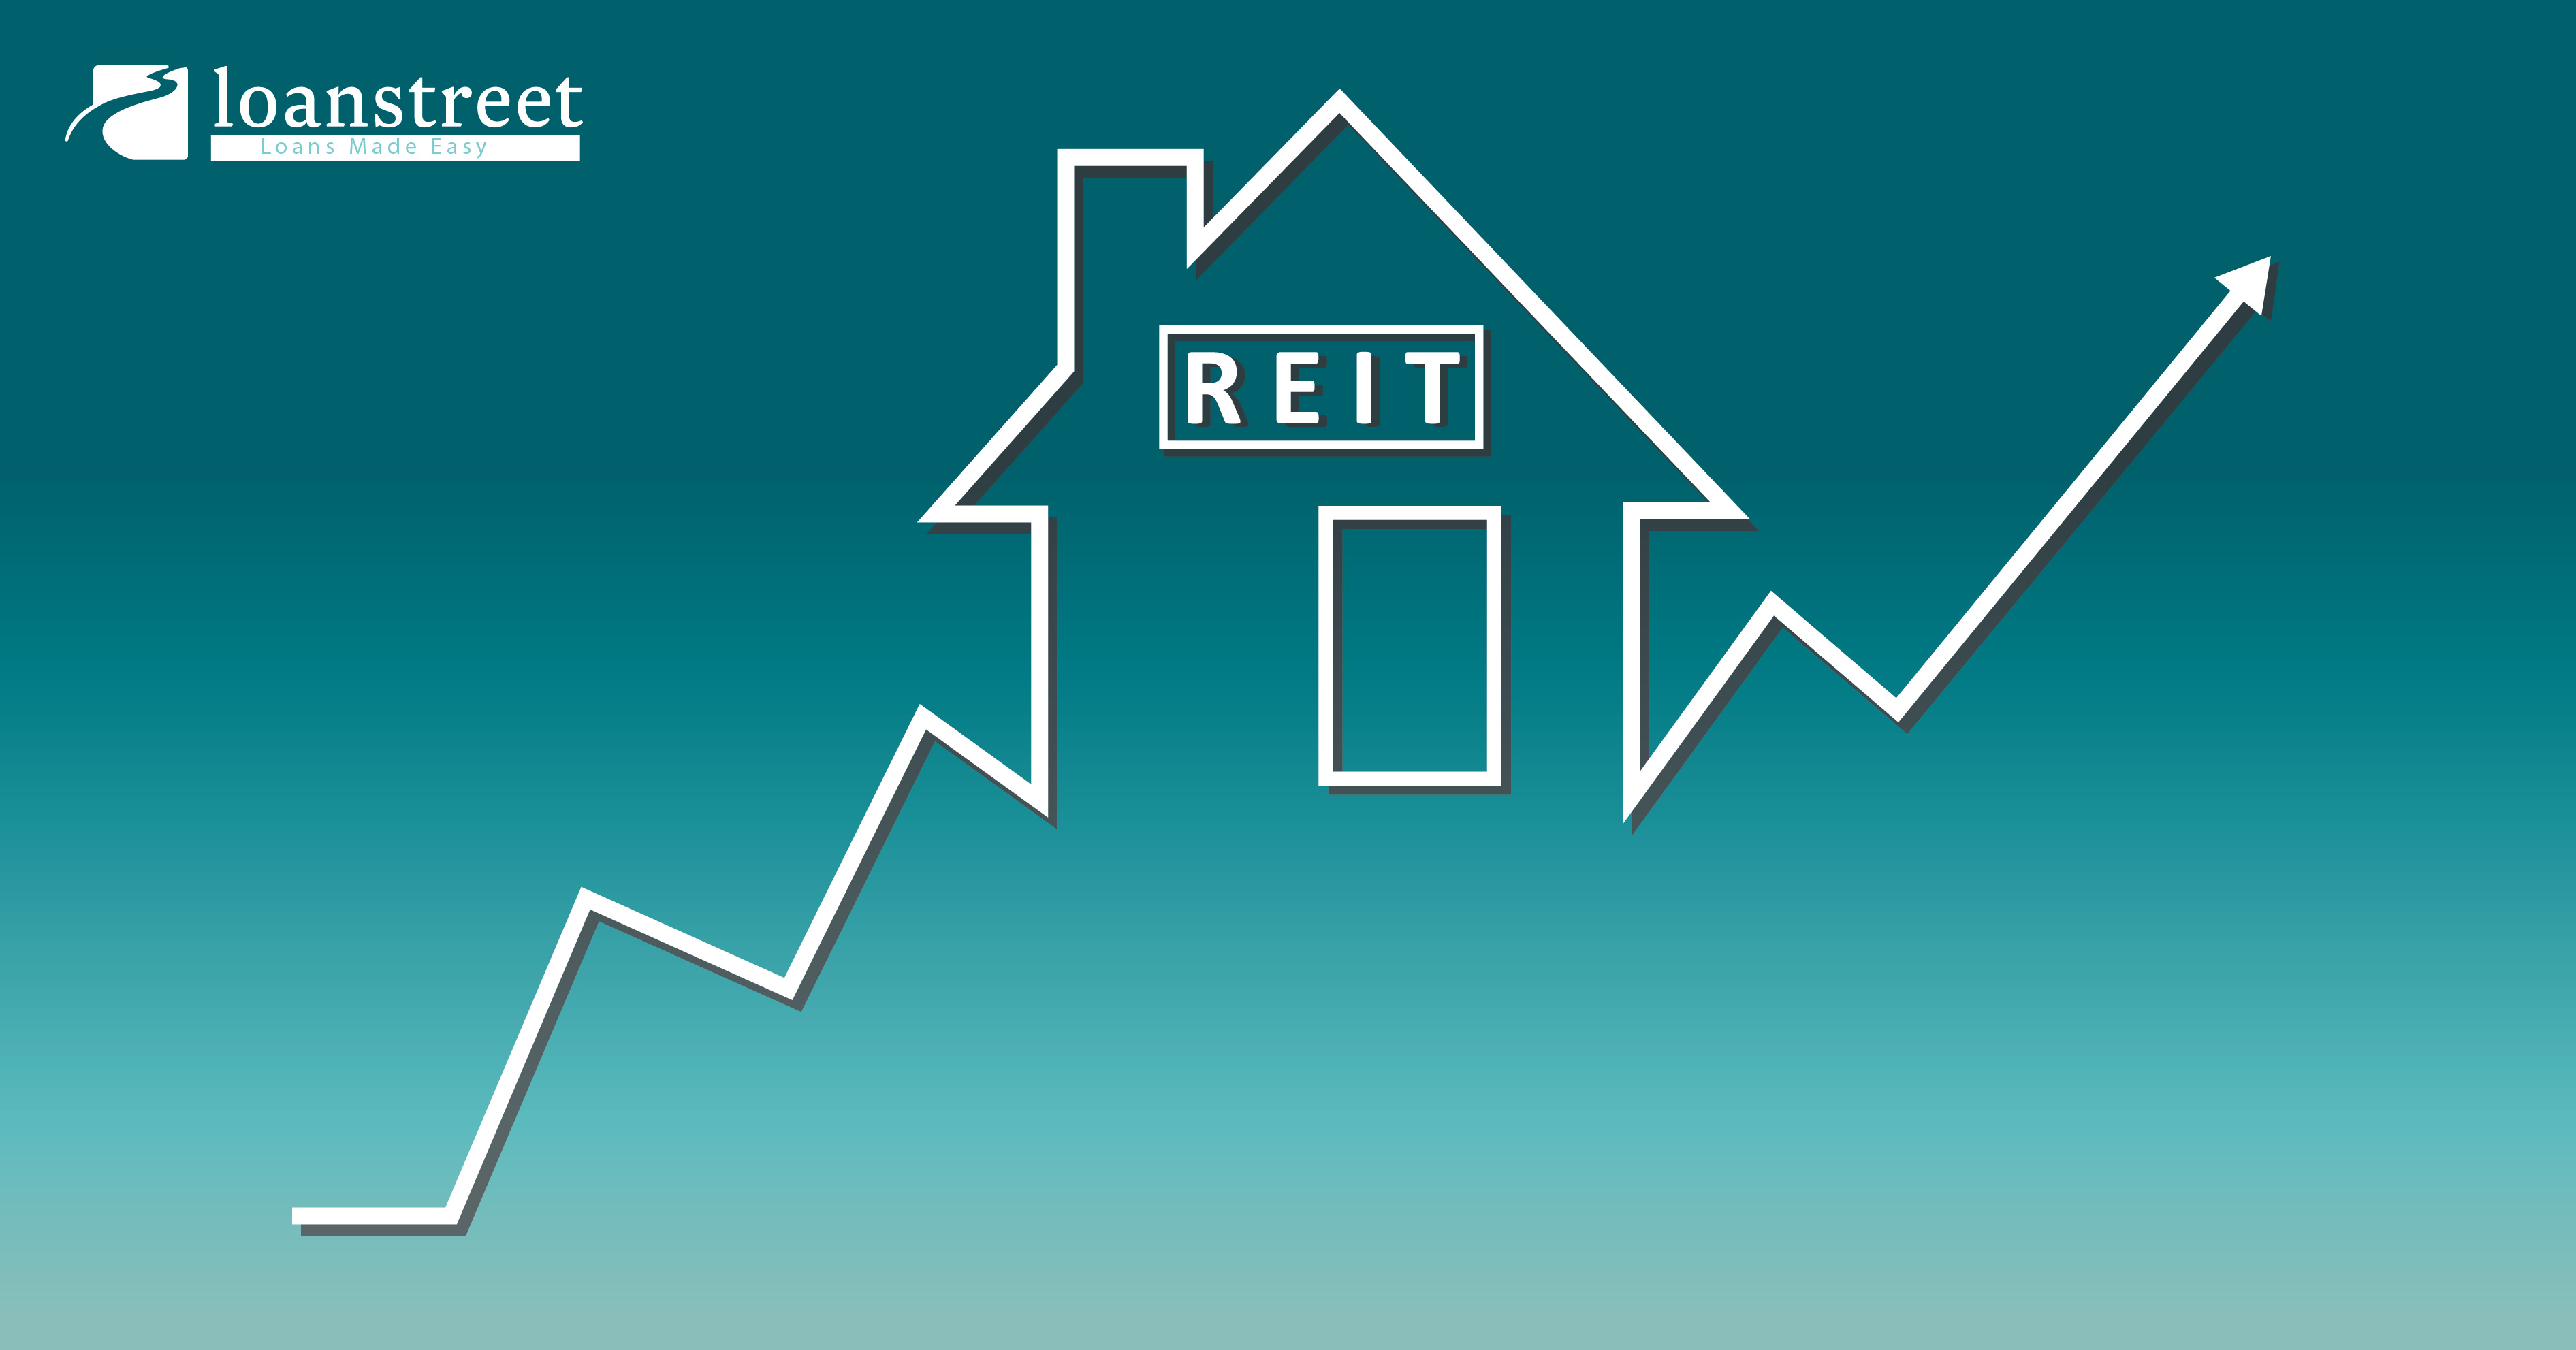 Financial planning series Part 2: REITs, a smarter form of investment